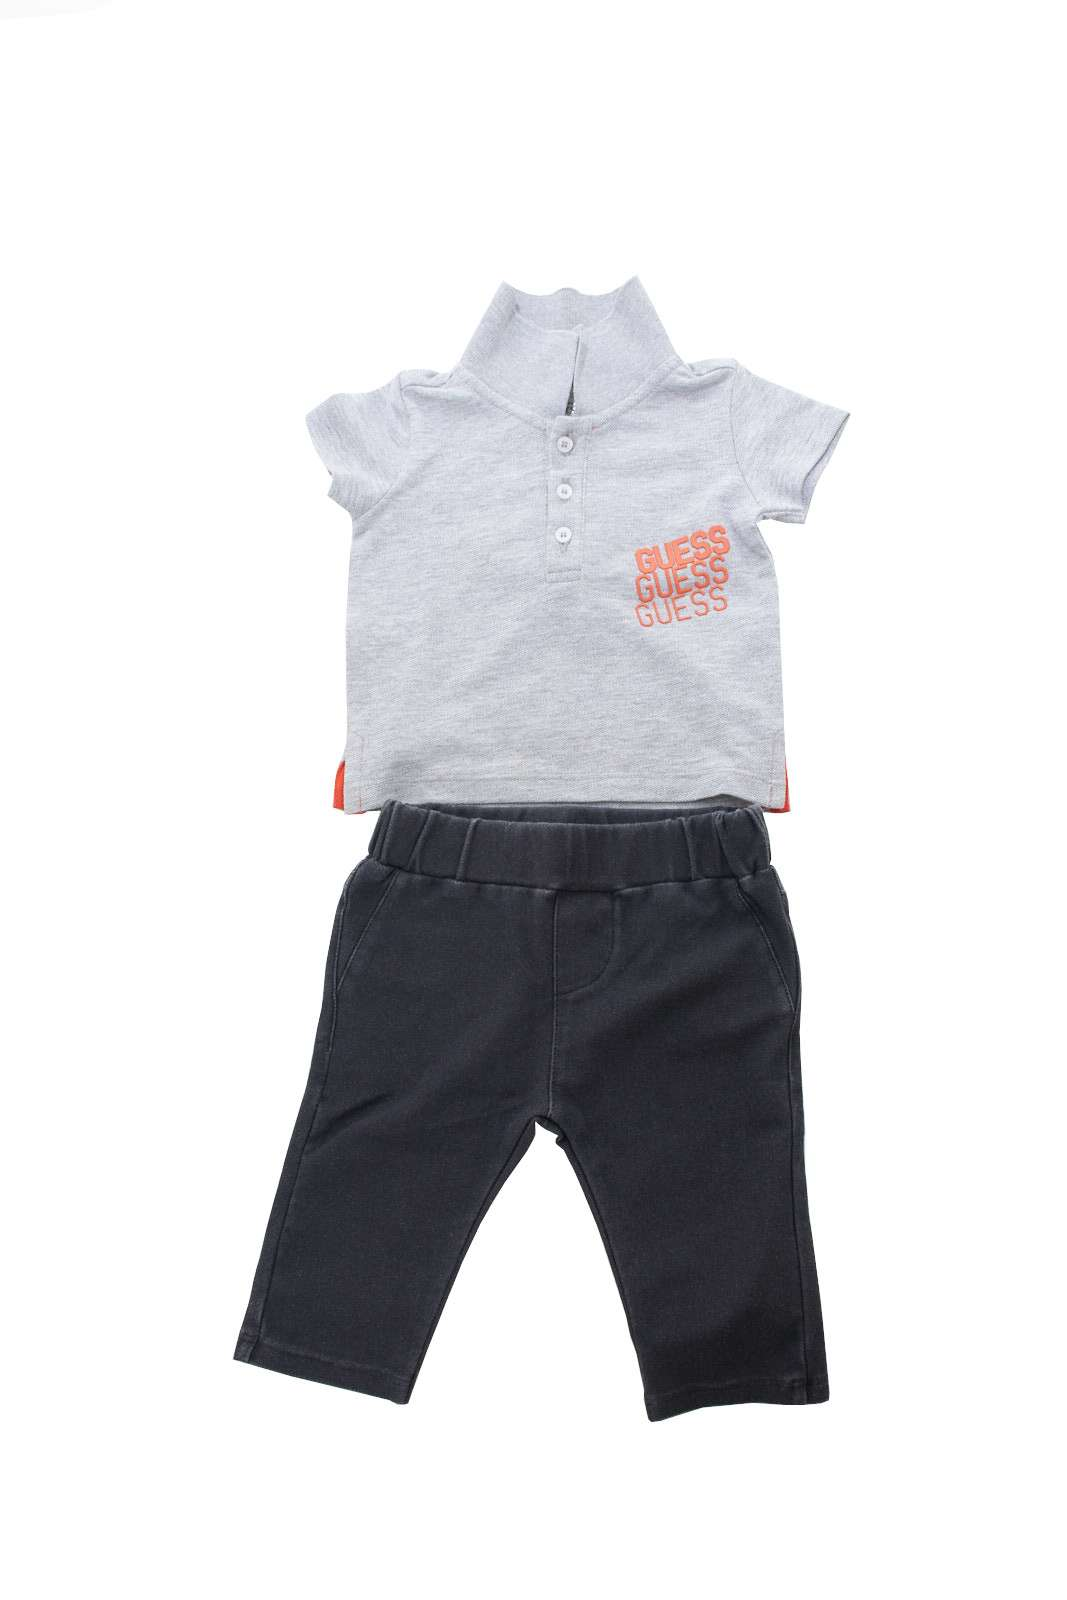 https://www.parmax.com/media/catalog/product/a/i/PE-outlet_parmax-completo-bambino-Guess-I91G00K83-A.jpg